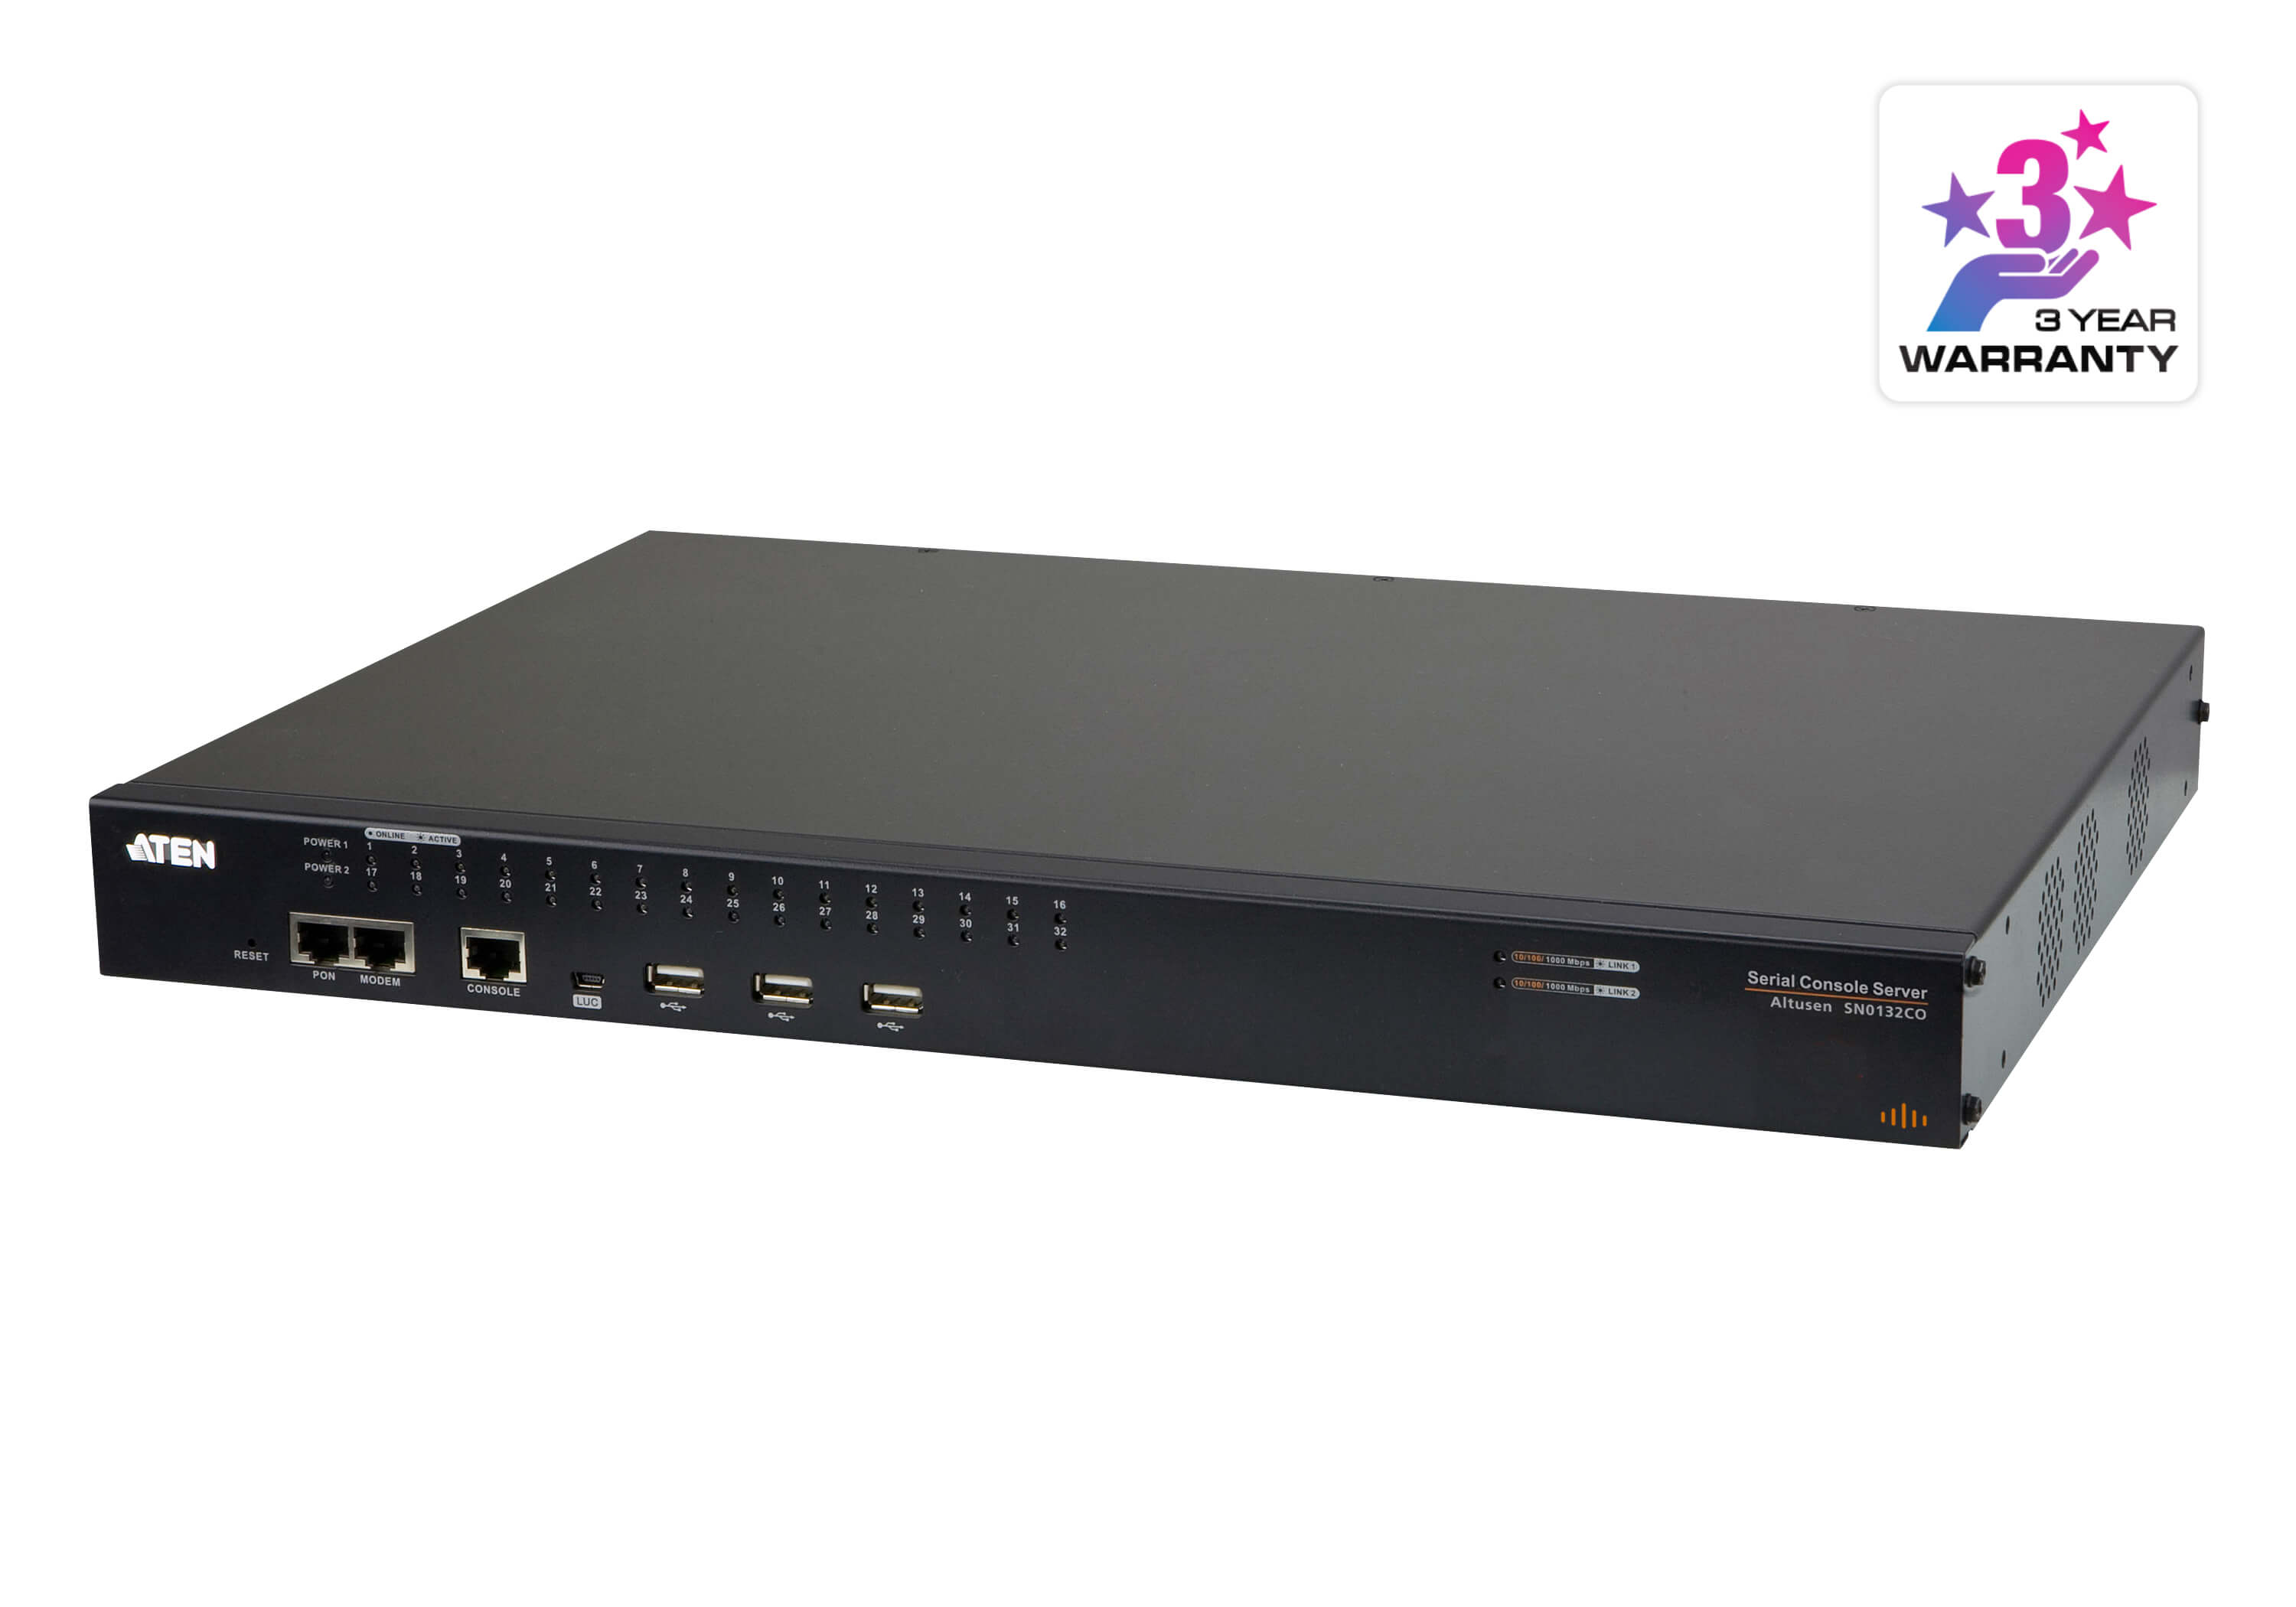 32-Port Serial Console Server with Dual Power/LAN - SN0132CO